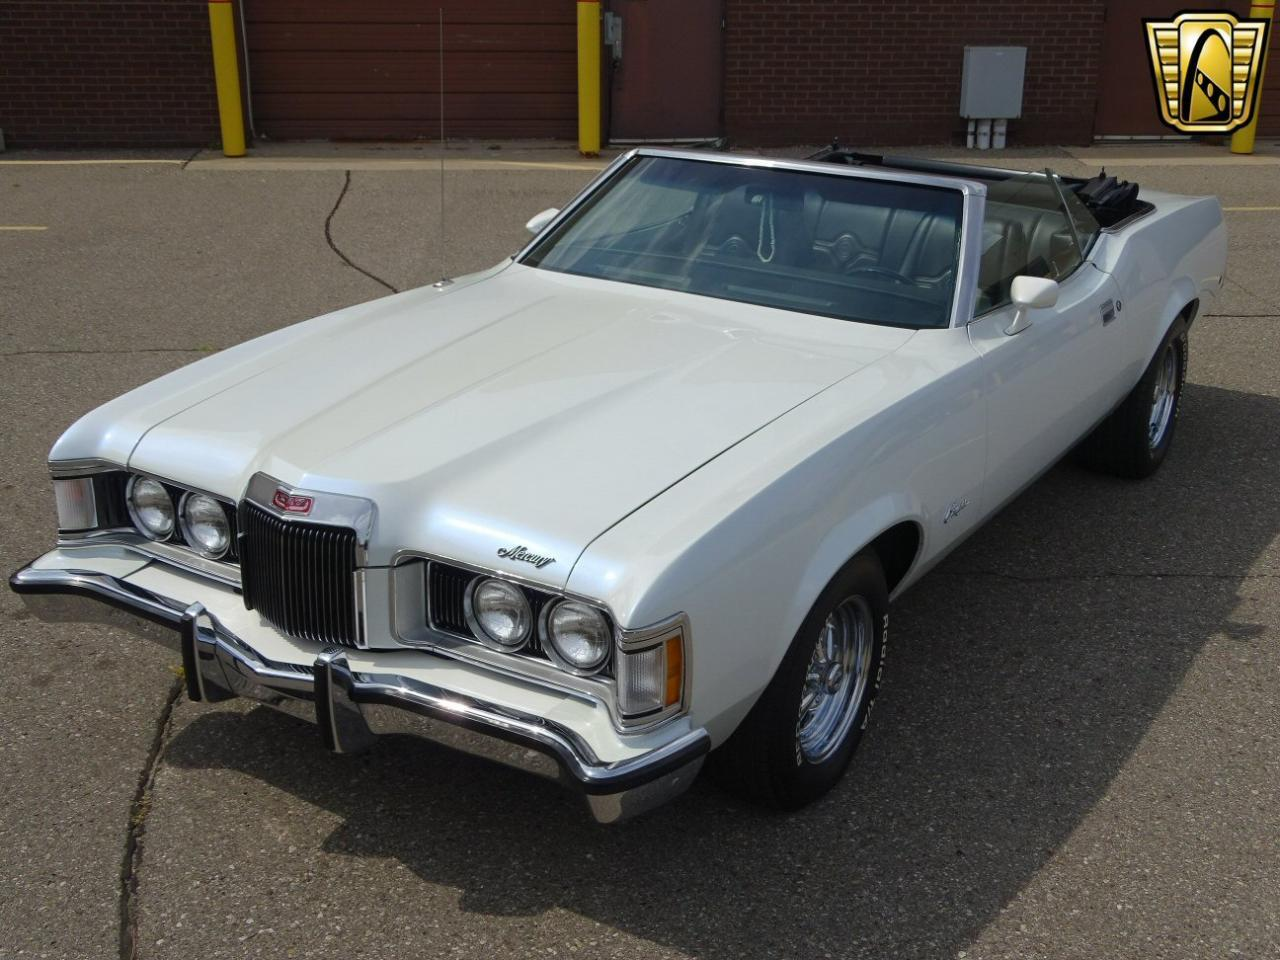 Large Picture of '73 Cougar located in Michigan - $19,995.00 Offered by Gateway Classic Cars - Detroit - LCNZ